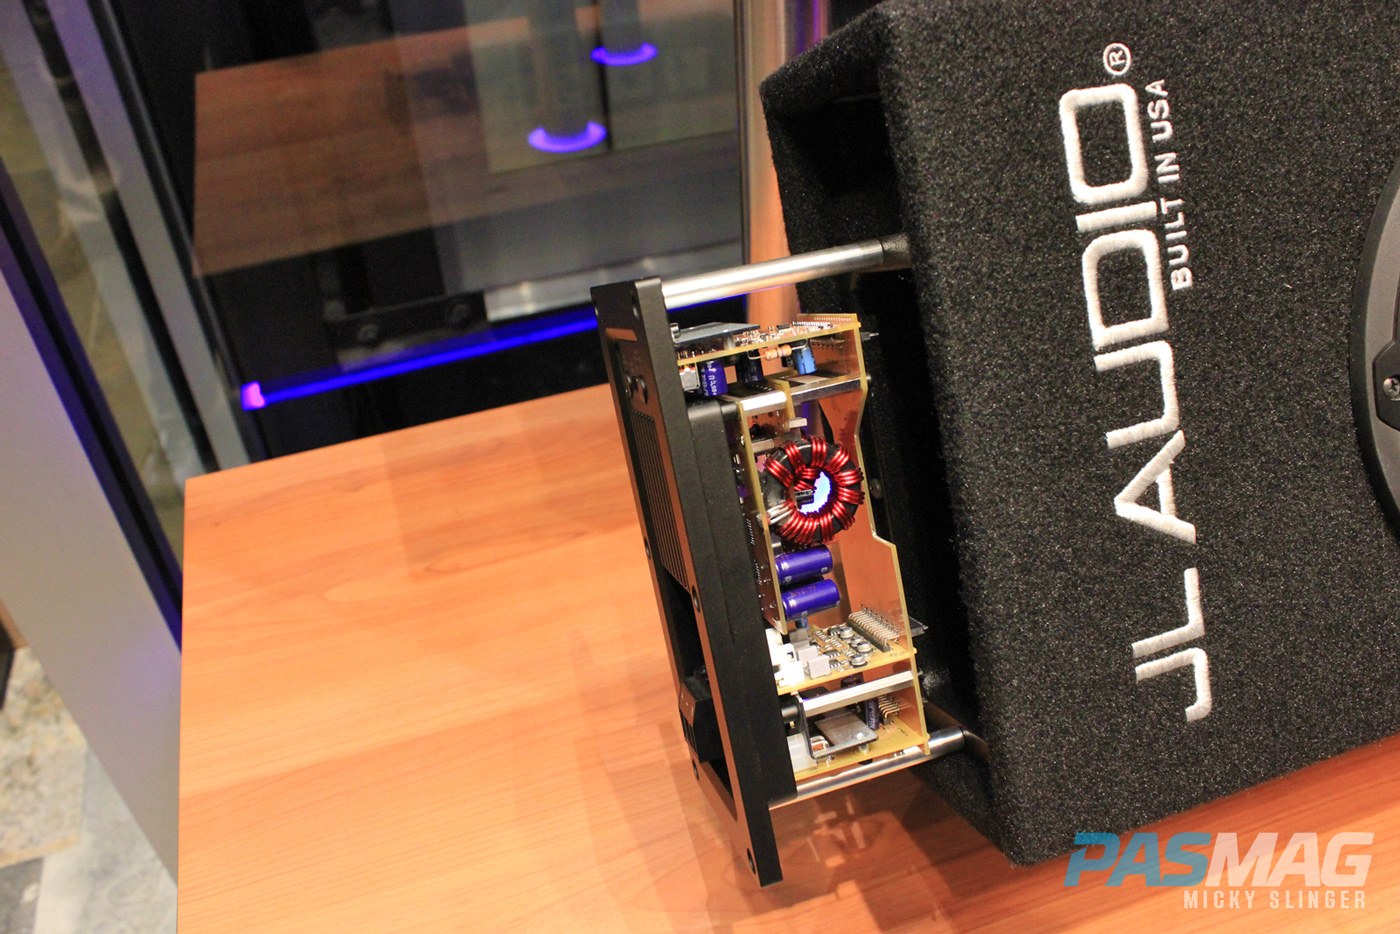 PASMAG CES 2015 Las Vegas NV JL Audio Powered Subwoofer